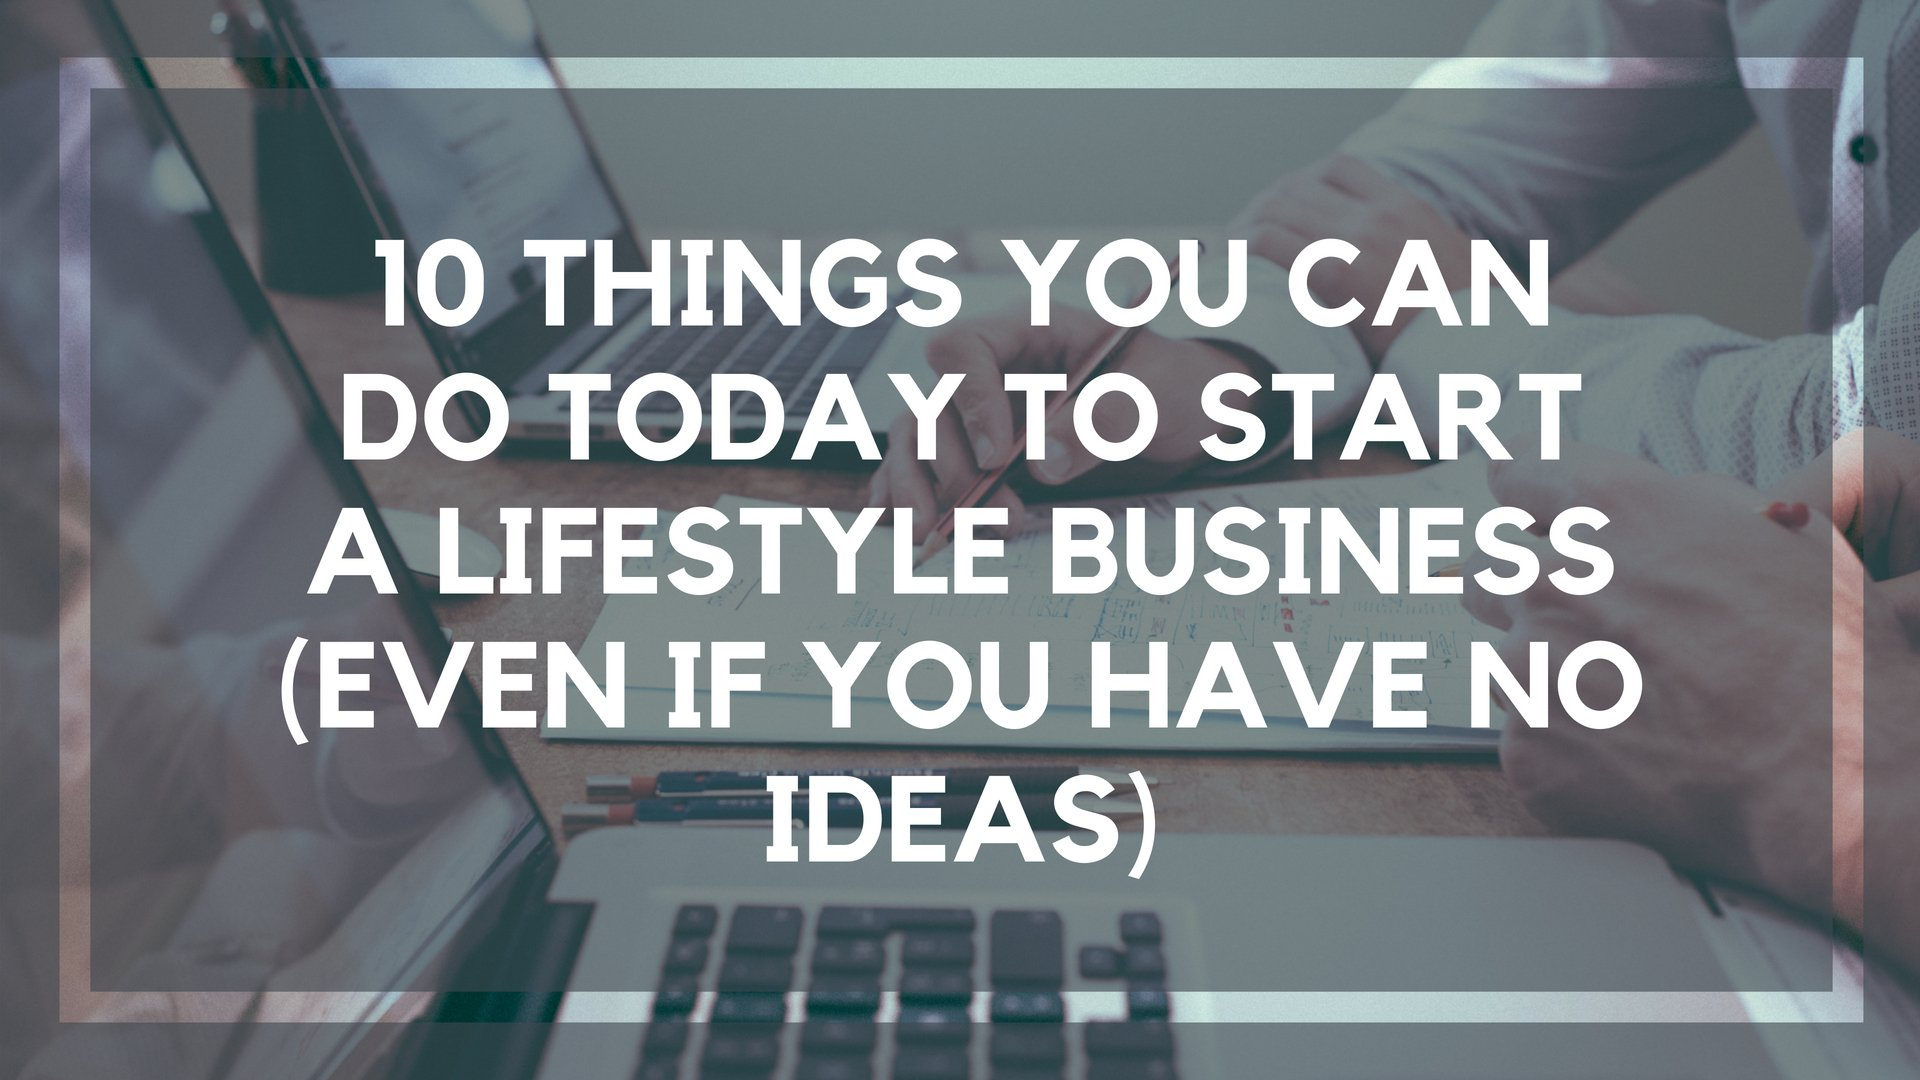 10 Things You Can Do Today to Start a Lifestyle Business